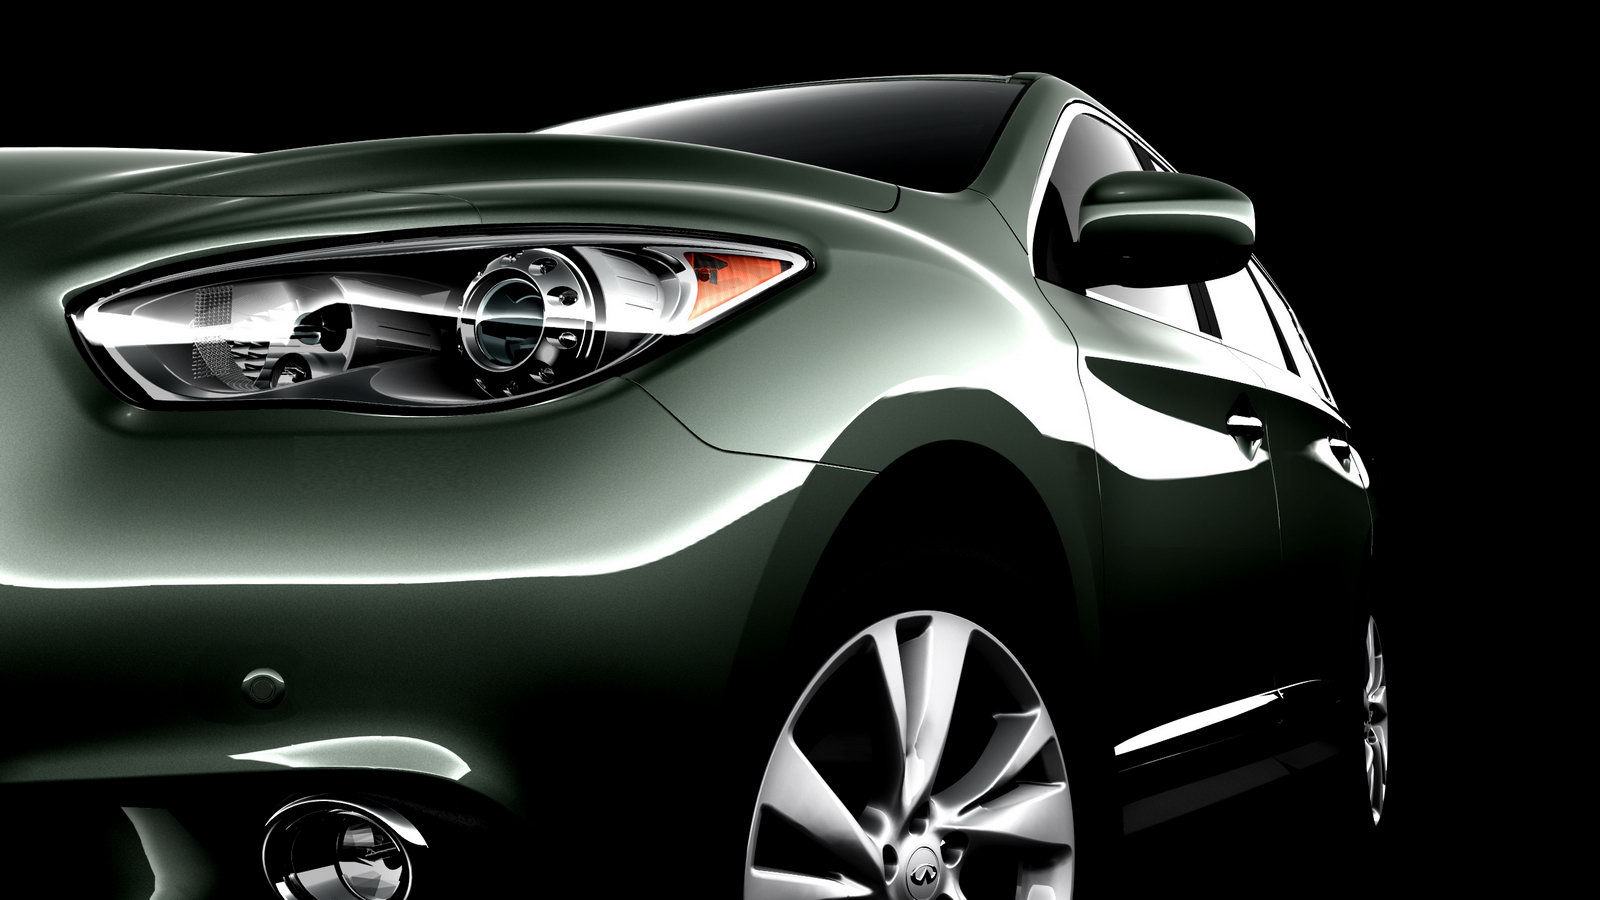 Infiniti JX Concept Teaser 1 INFINITI RELEASES FIRST EDITION OF INFINITI JX CONCEPT